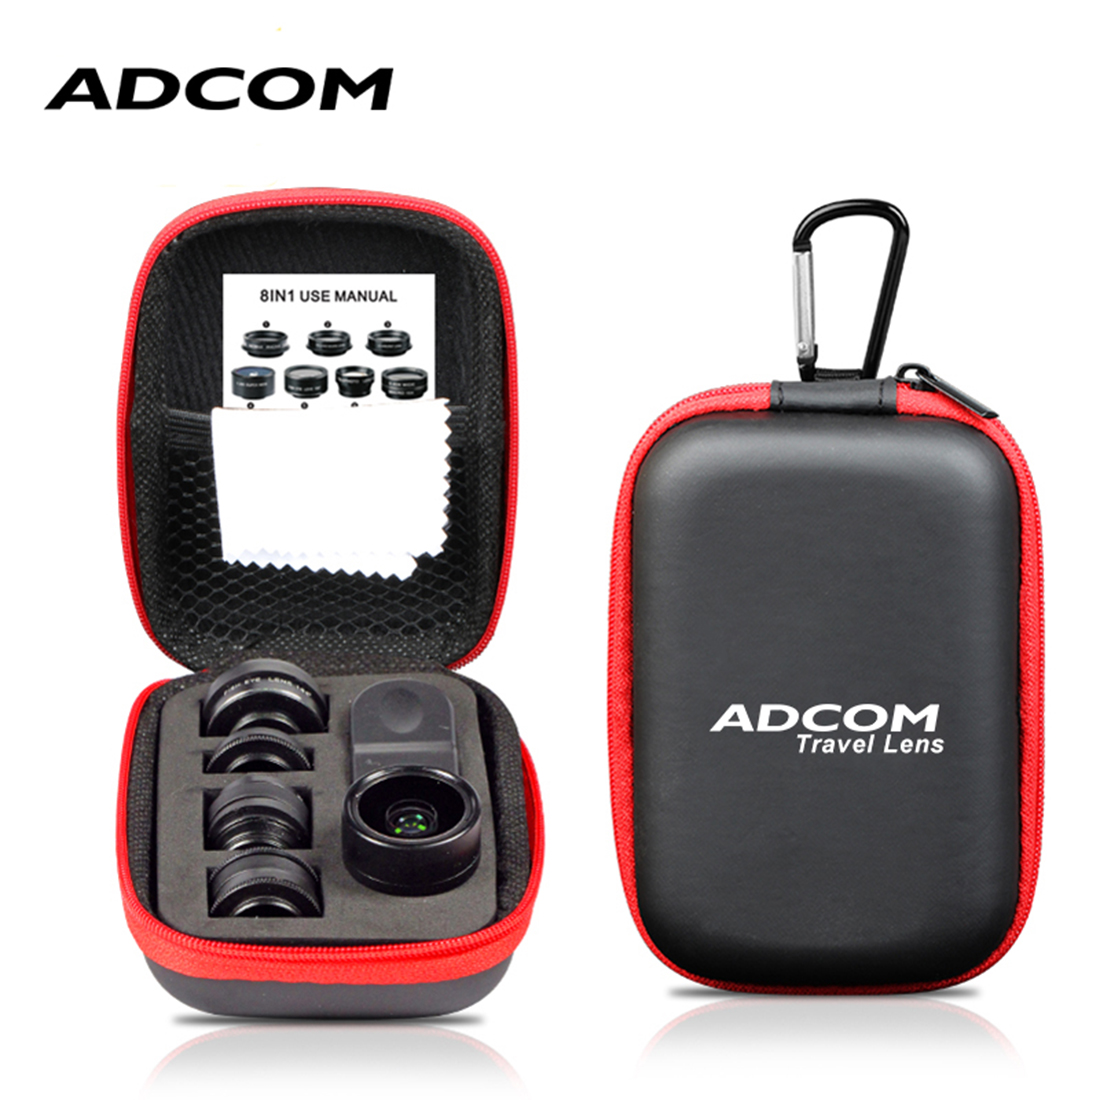 Adcom 8 in 1 Mobile Phone Camera Lens Kit Compatible with All iPhone Android Smartphones  Black